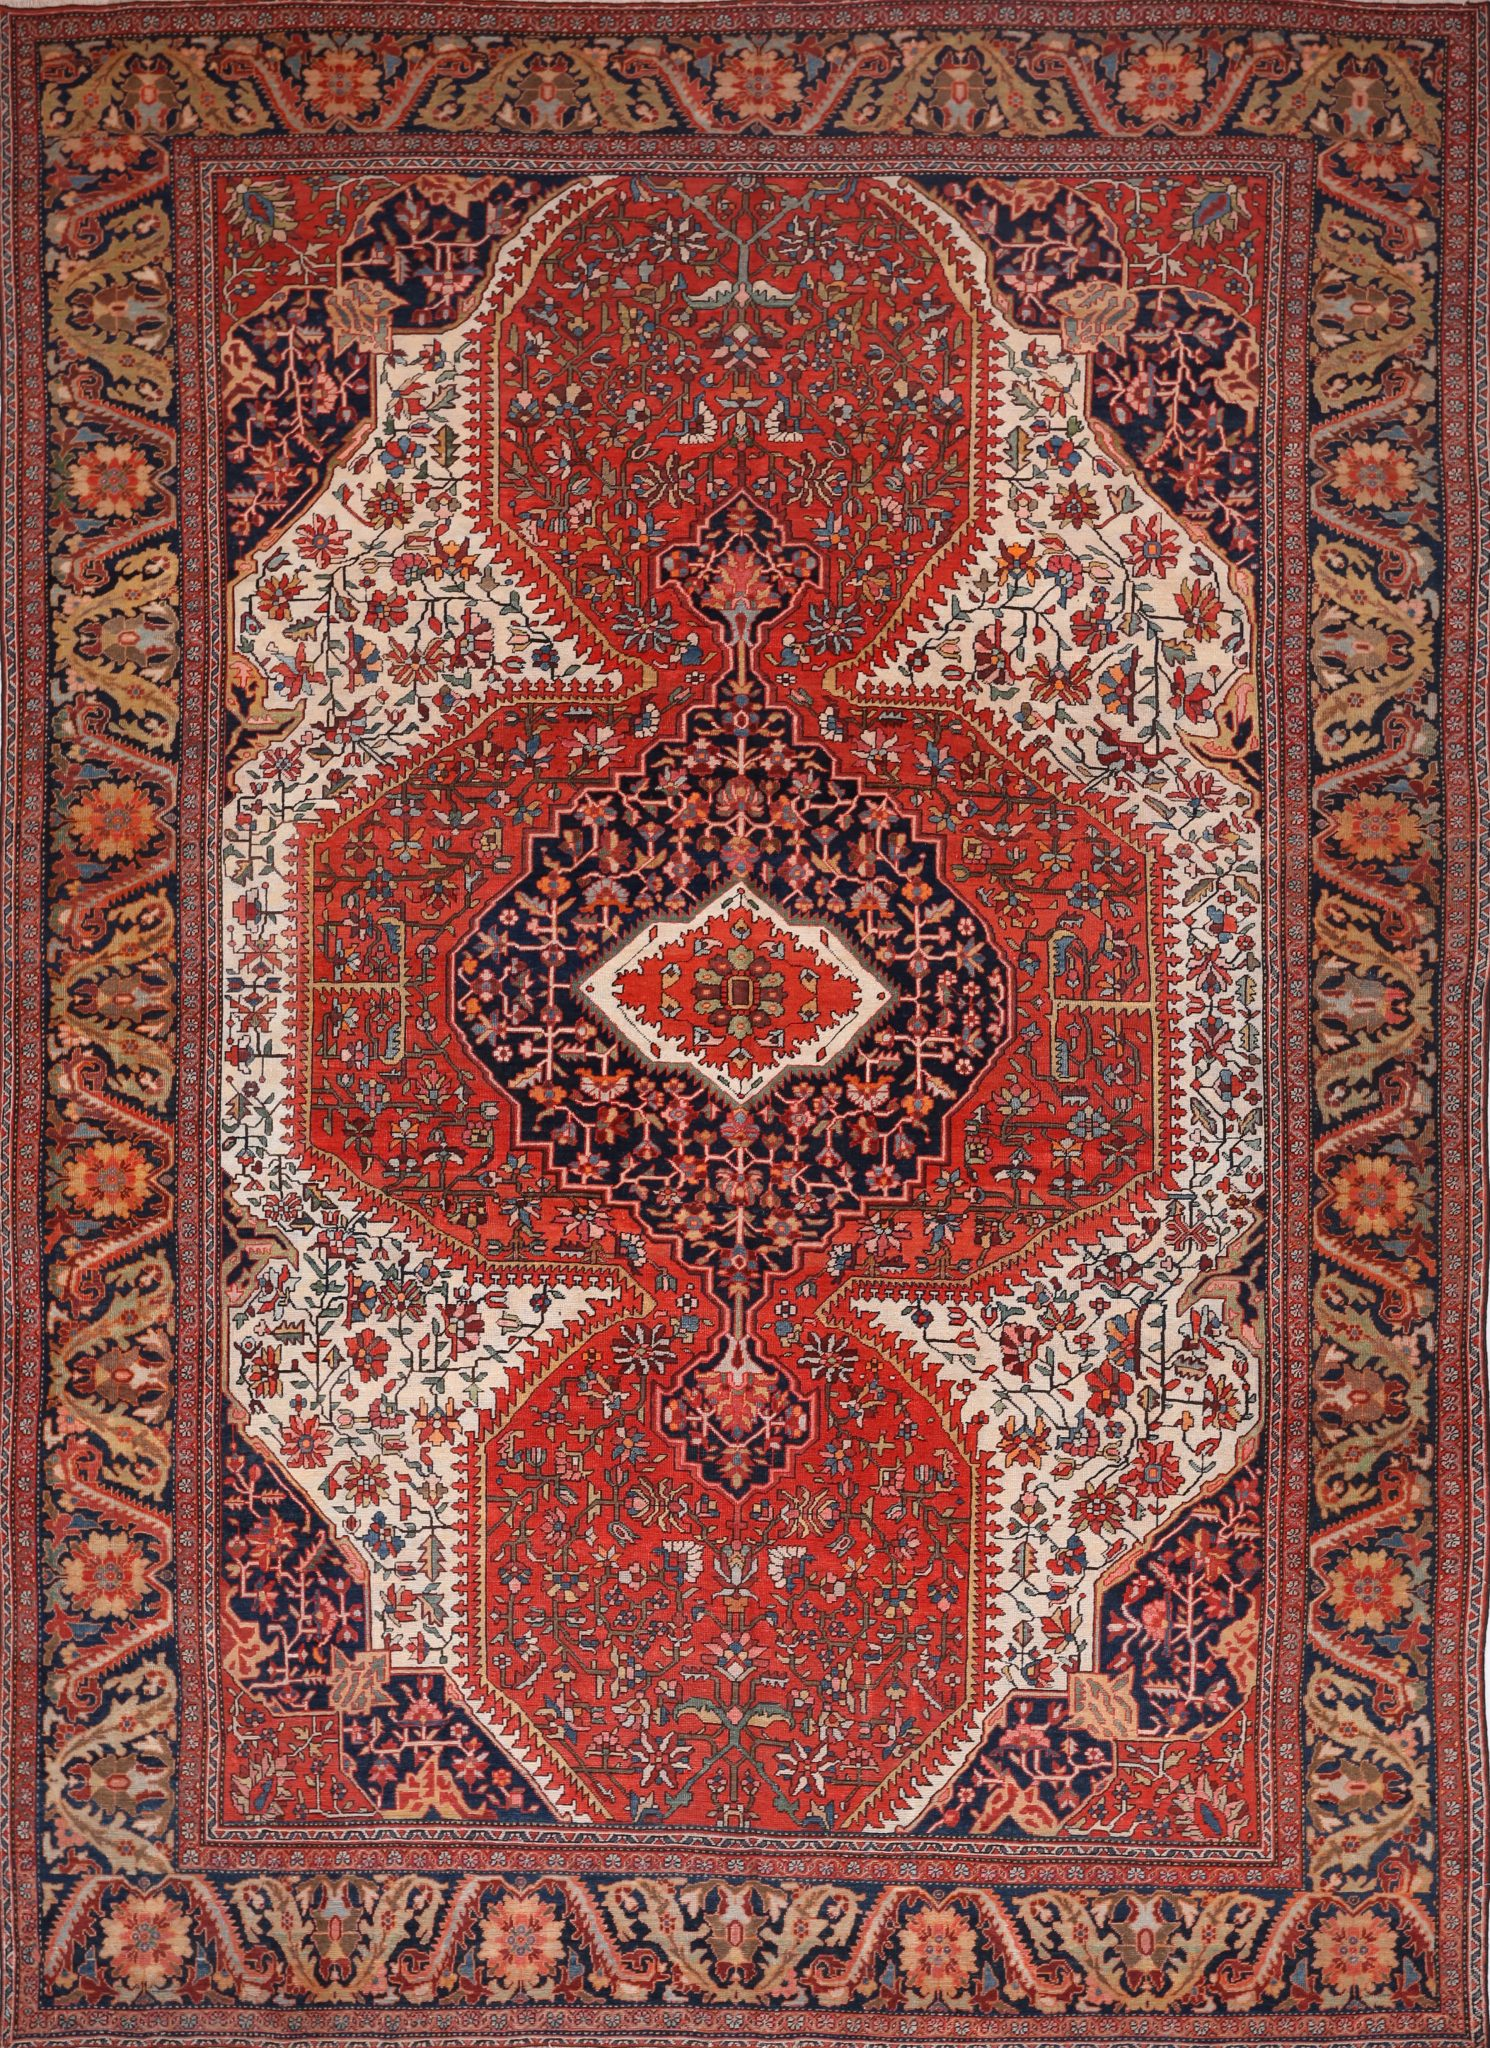 ANTIQUE PERSIAN AREA RUGS IN DALLAS (DFW), TX RenCollection